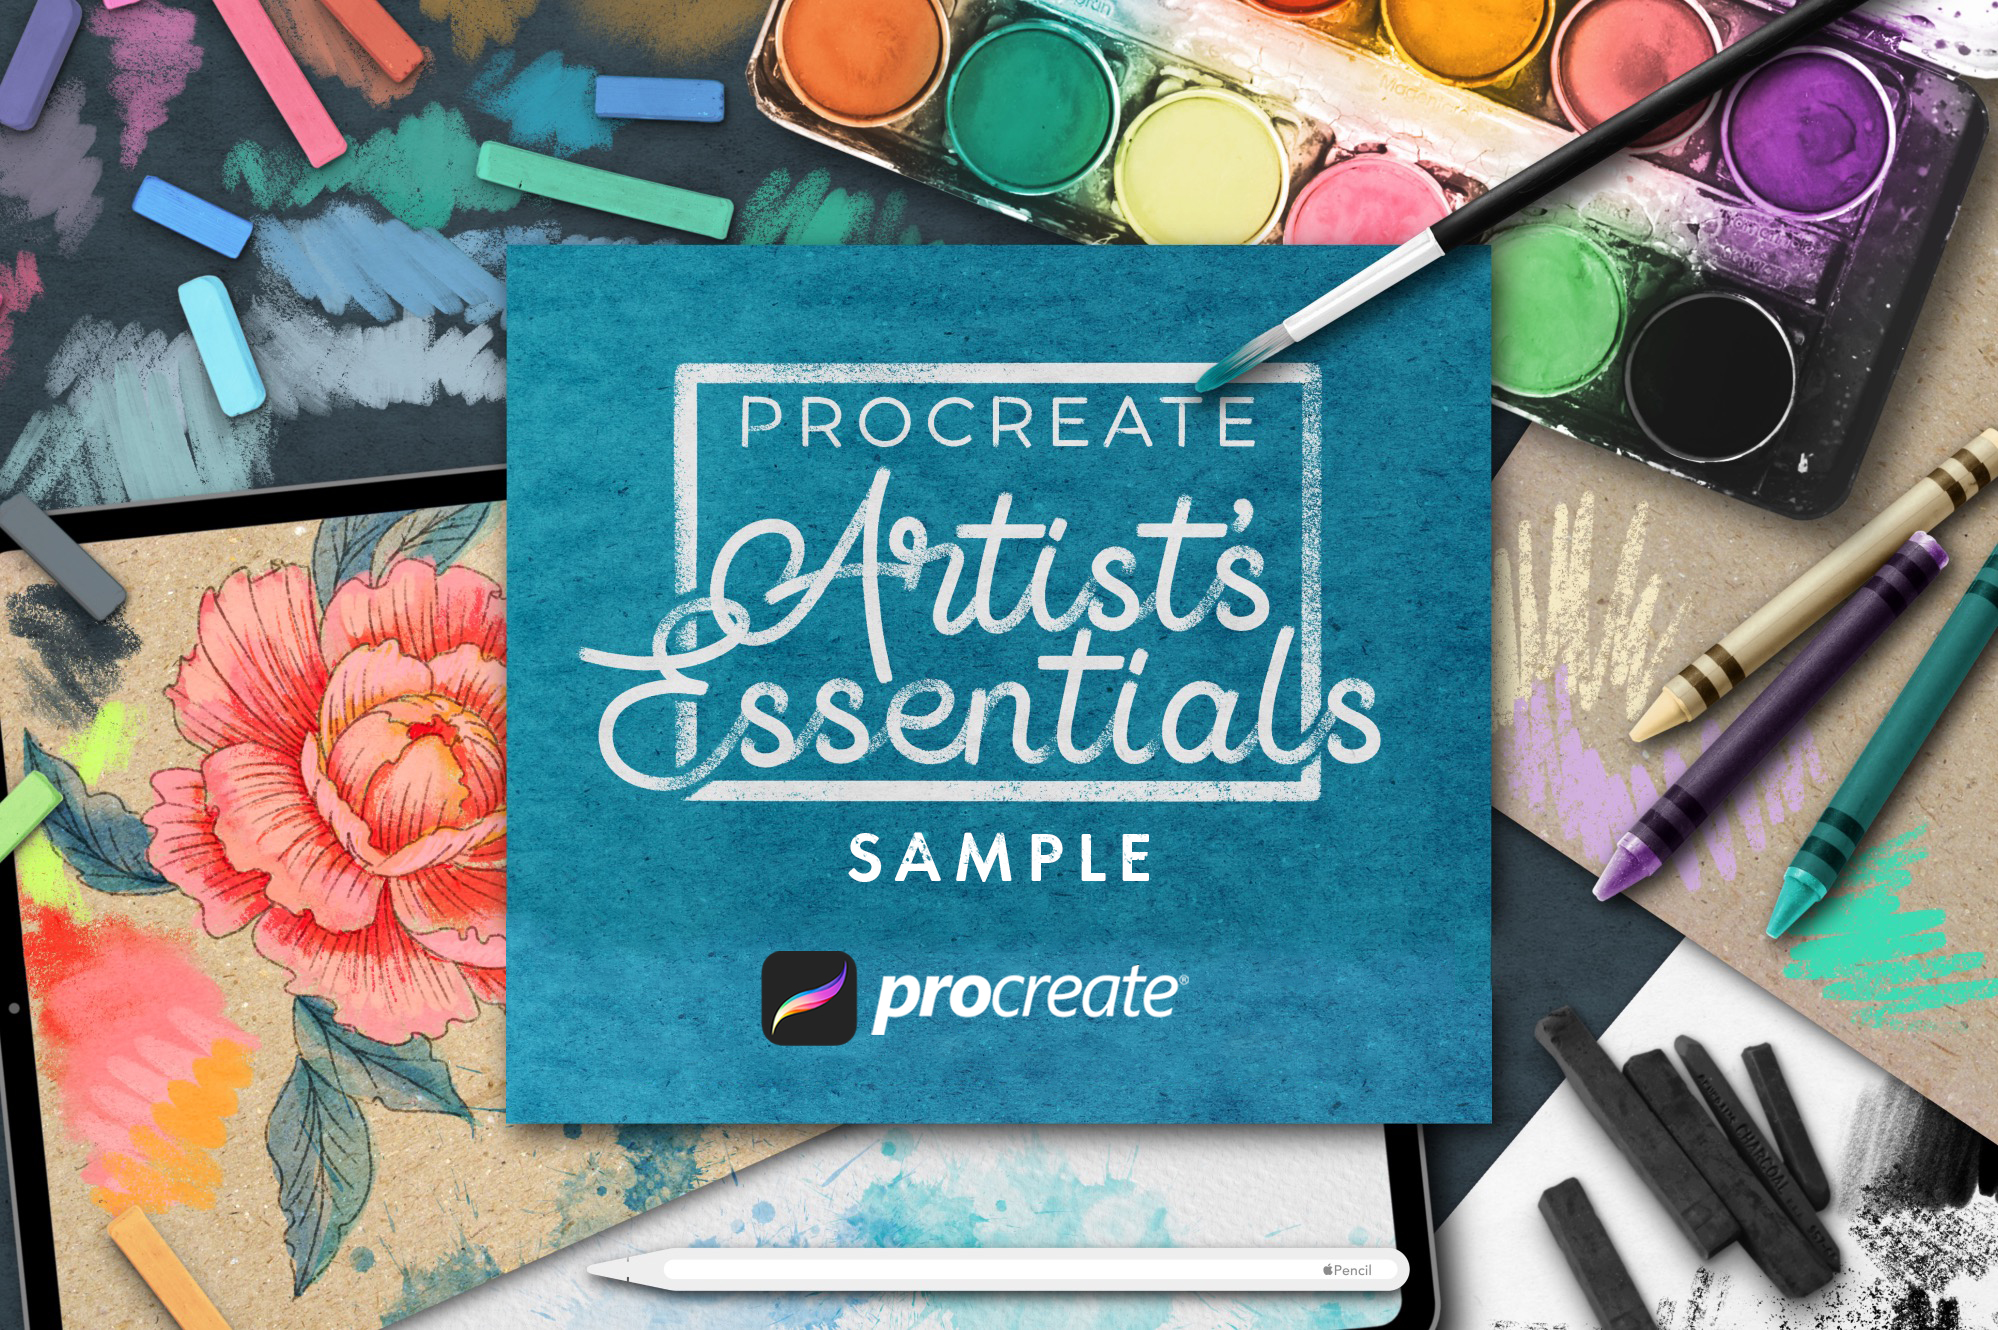 Artist's Essentials For Procreate Sample